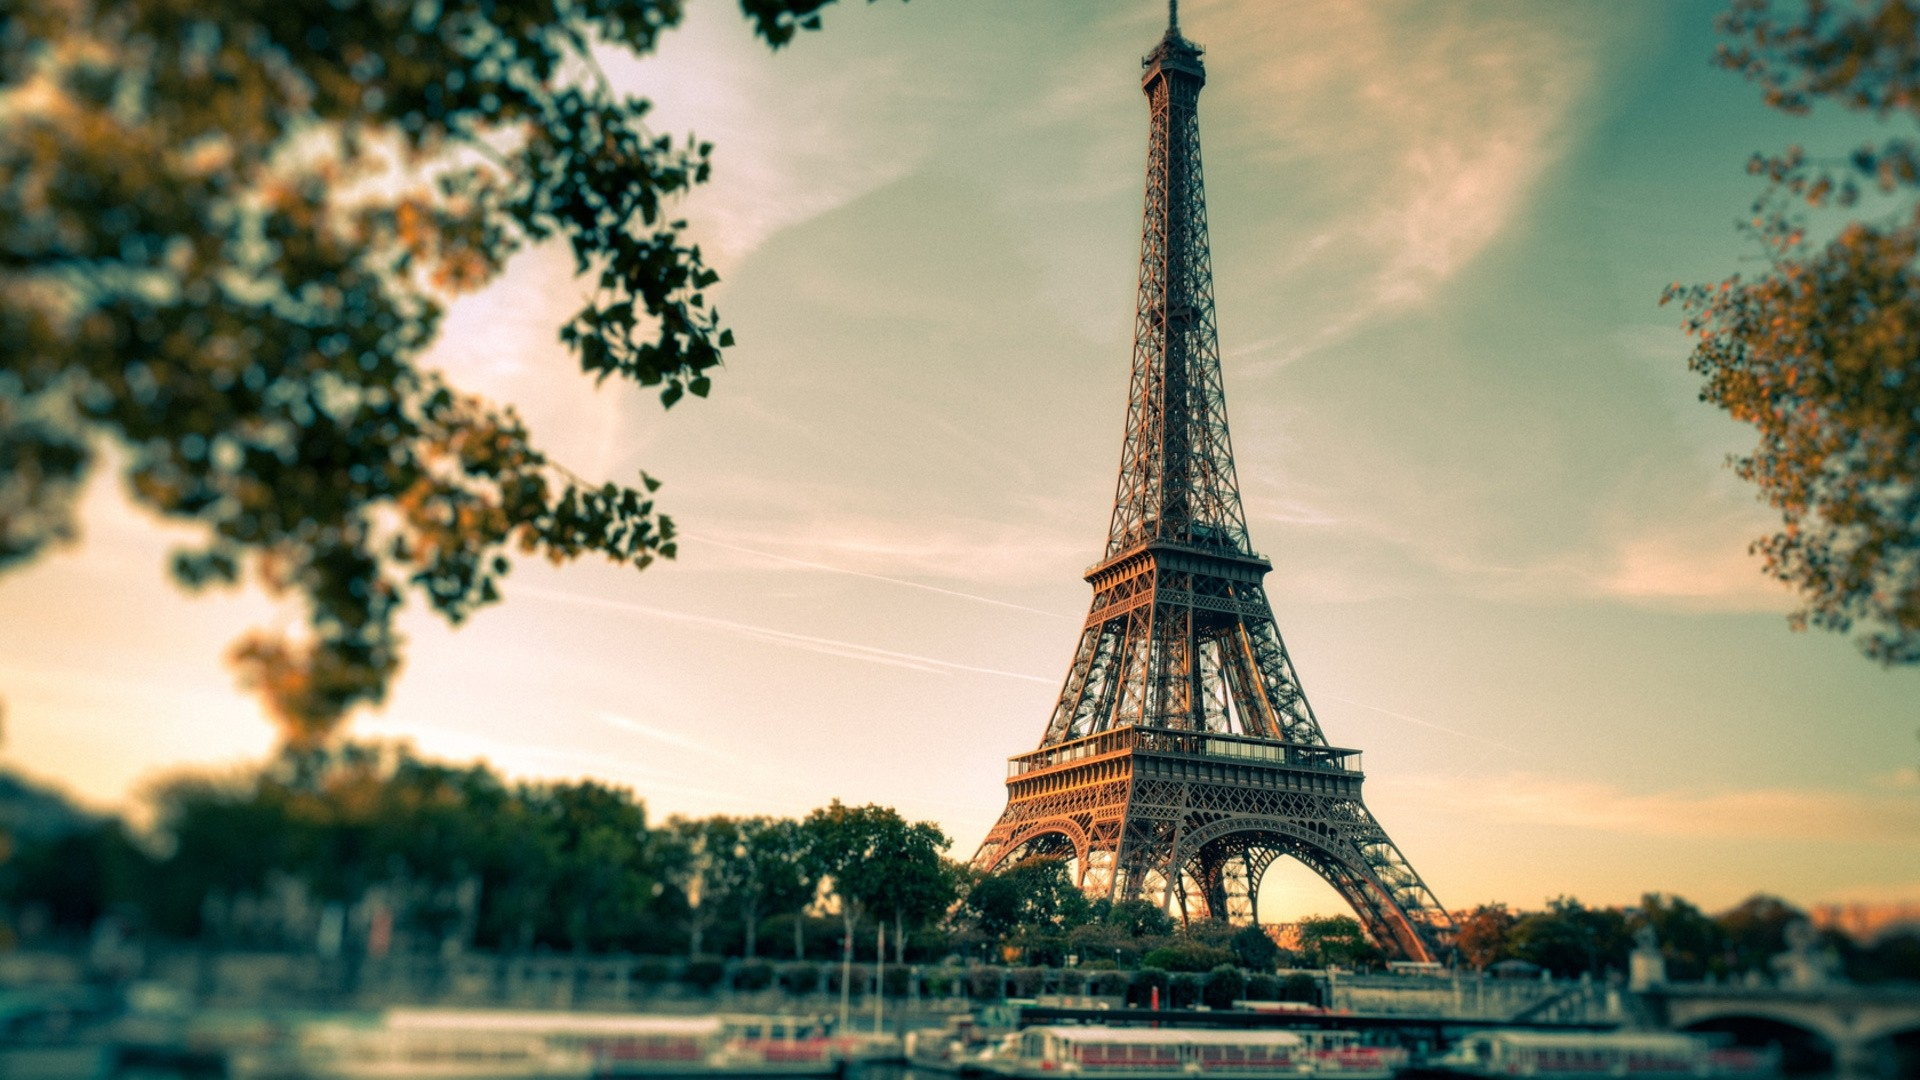 Eiffel Tower Wallpaper and Background